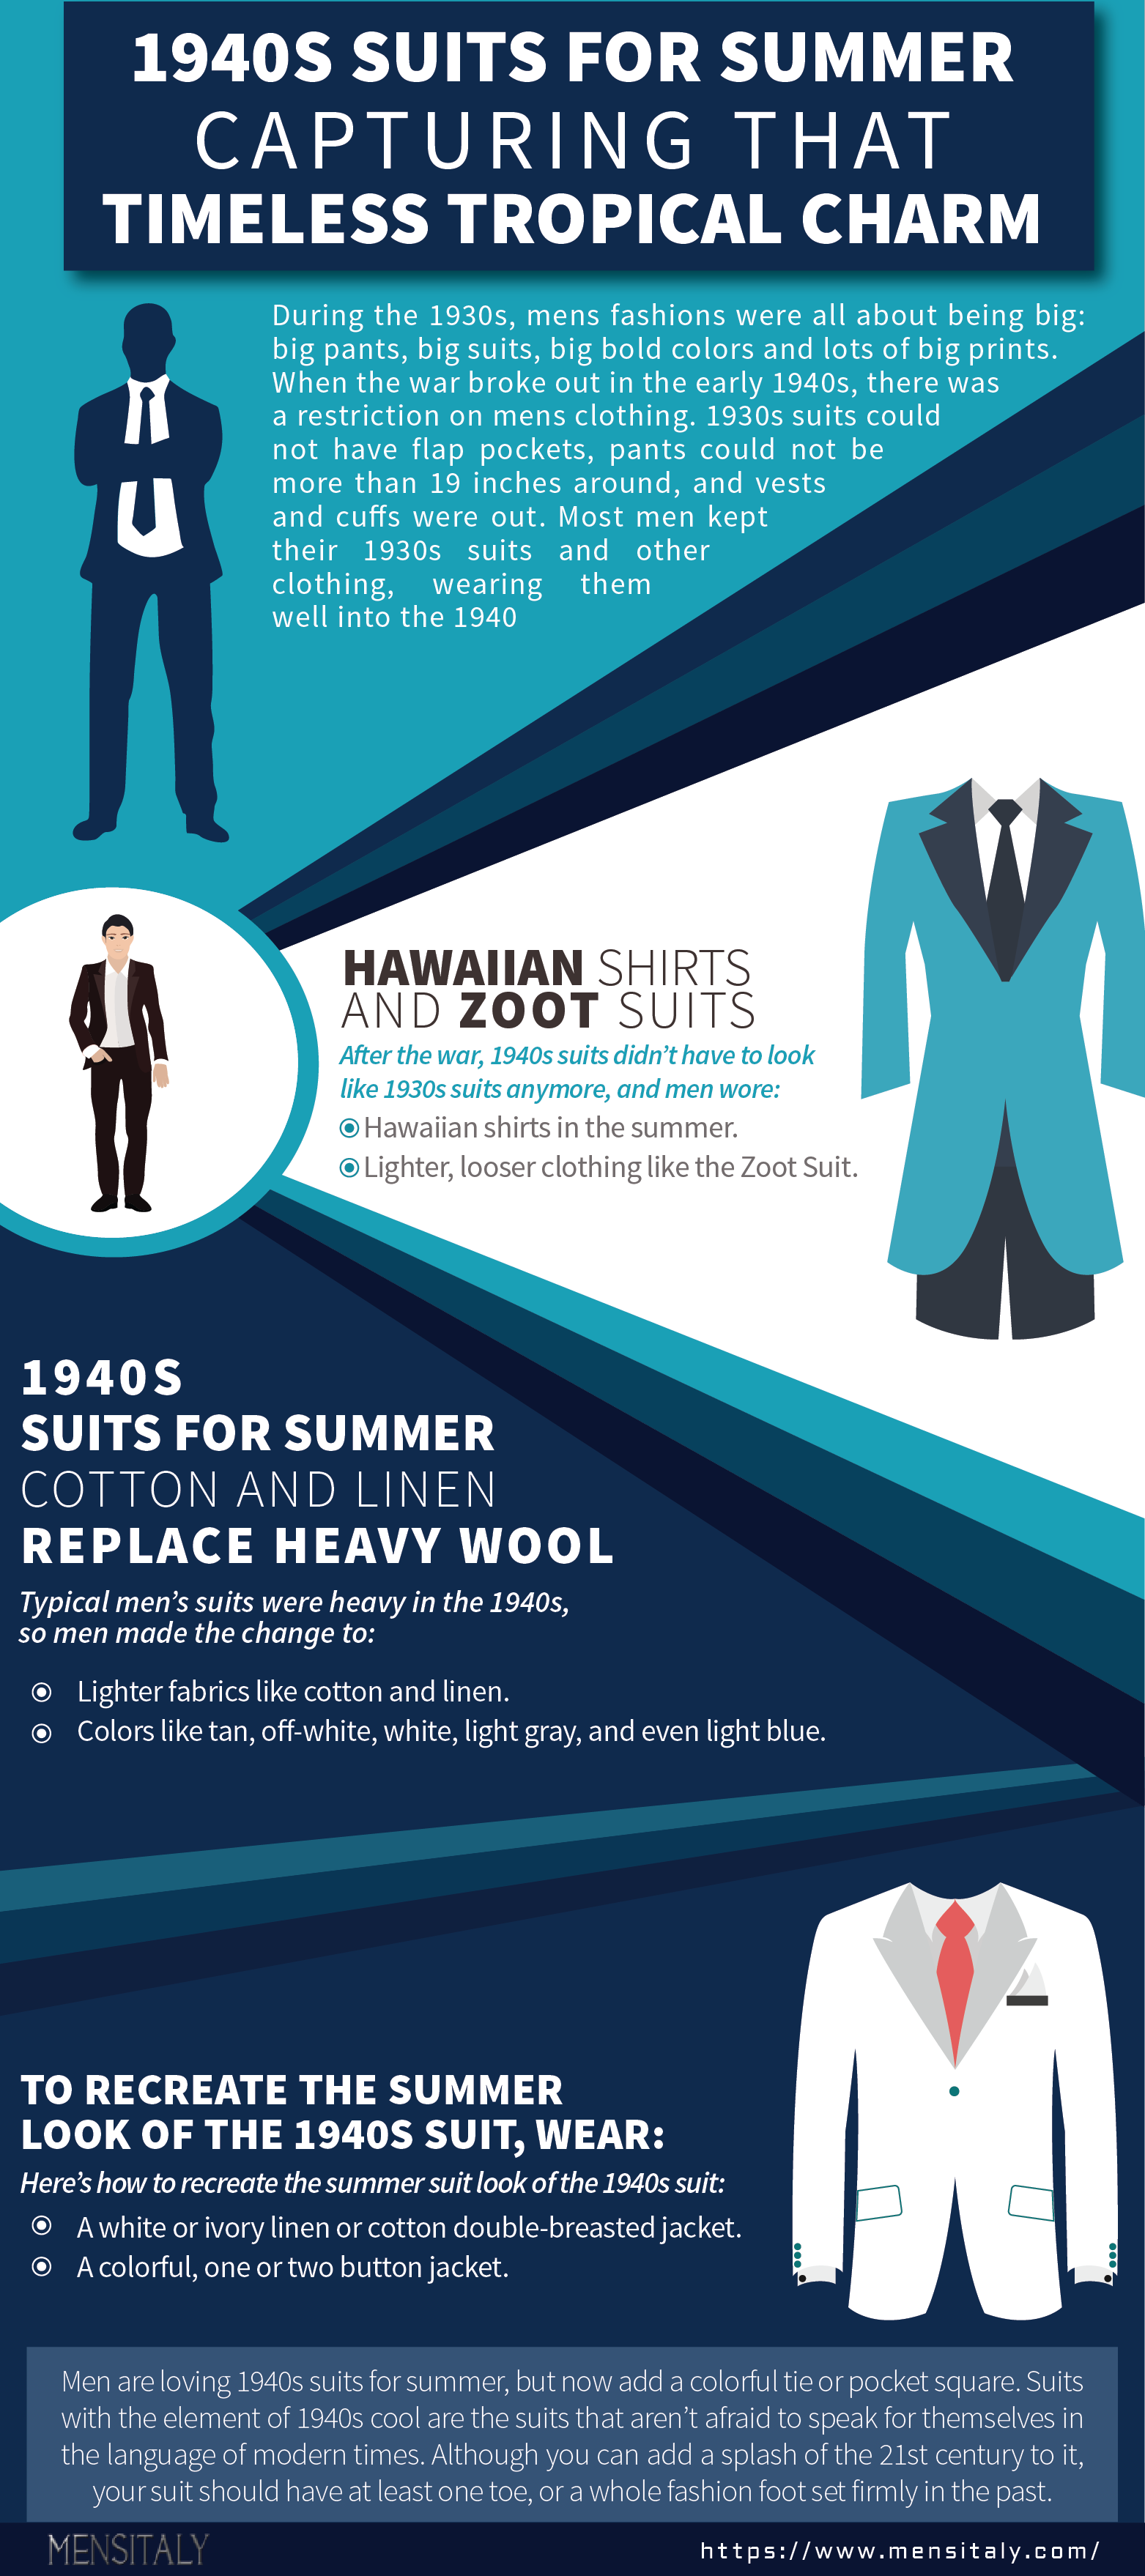 1940s Suits for Summer - Capturing That Timeless Tropical Charm